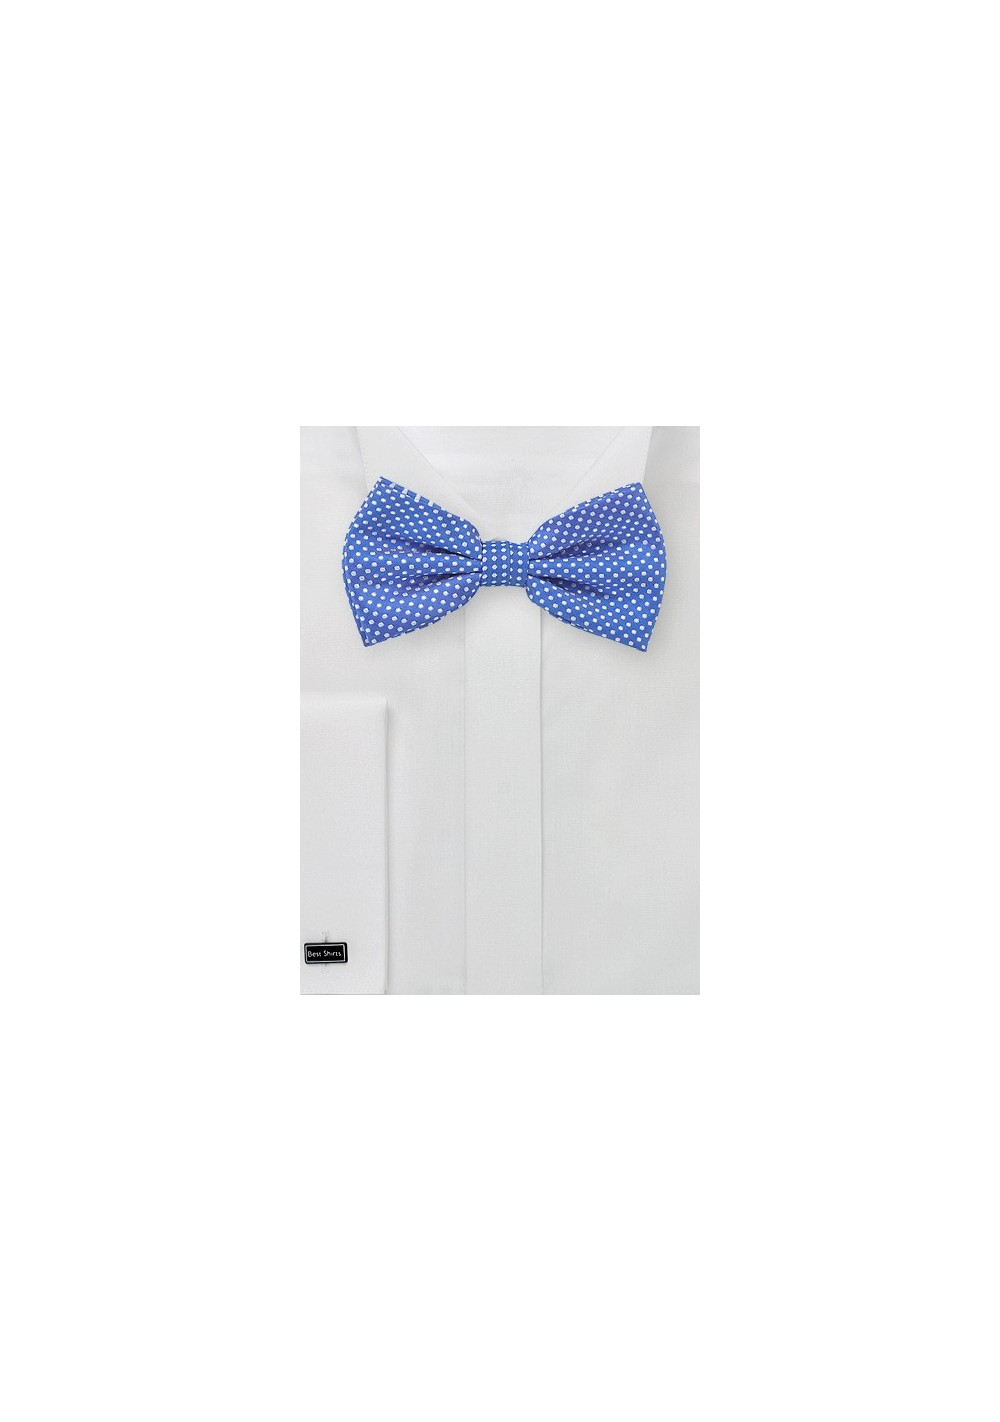 Horizon Blue Bow Tie with Pin Dots